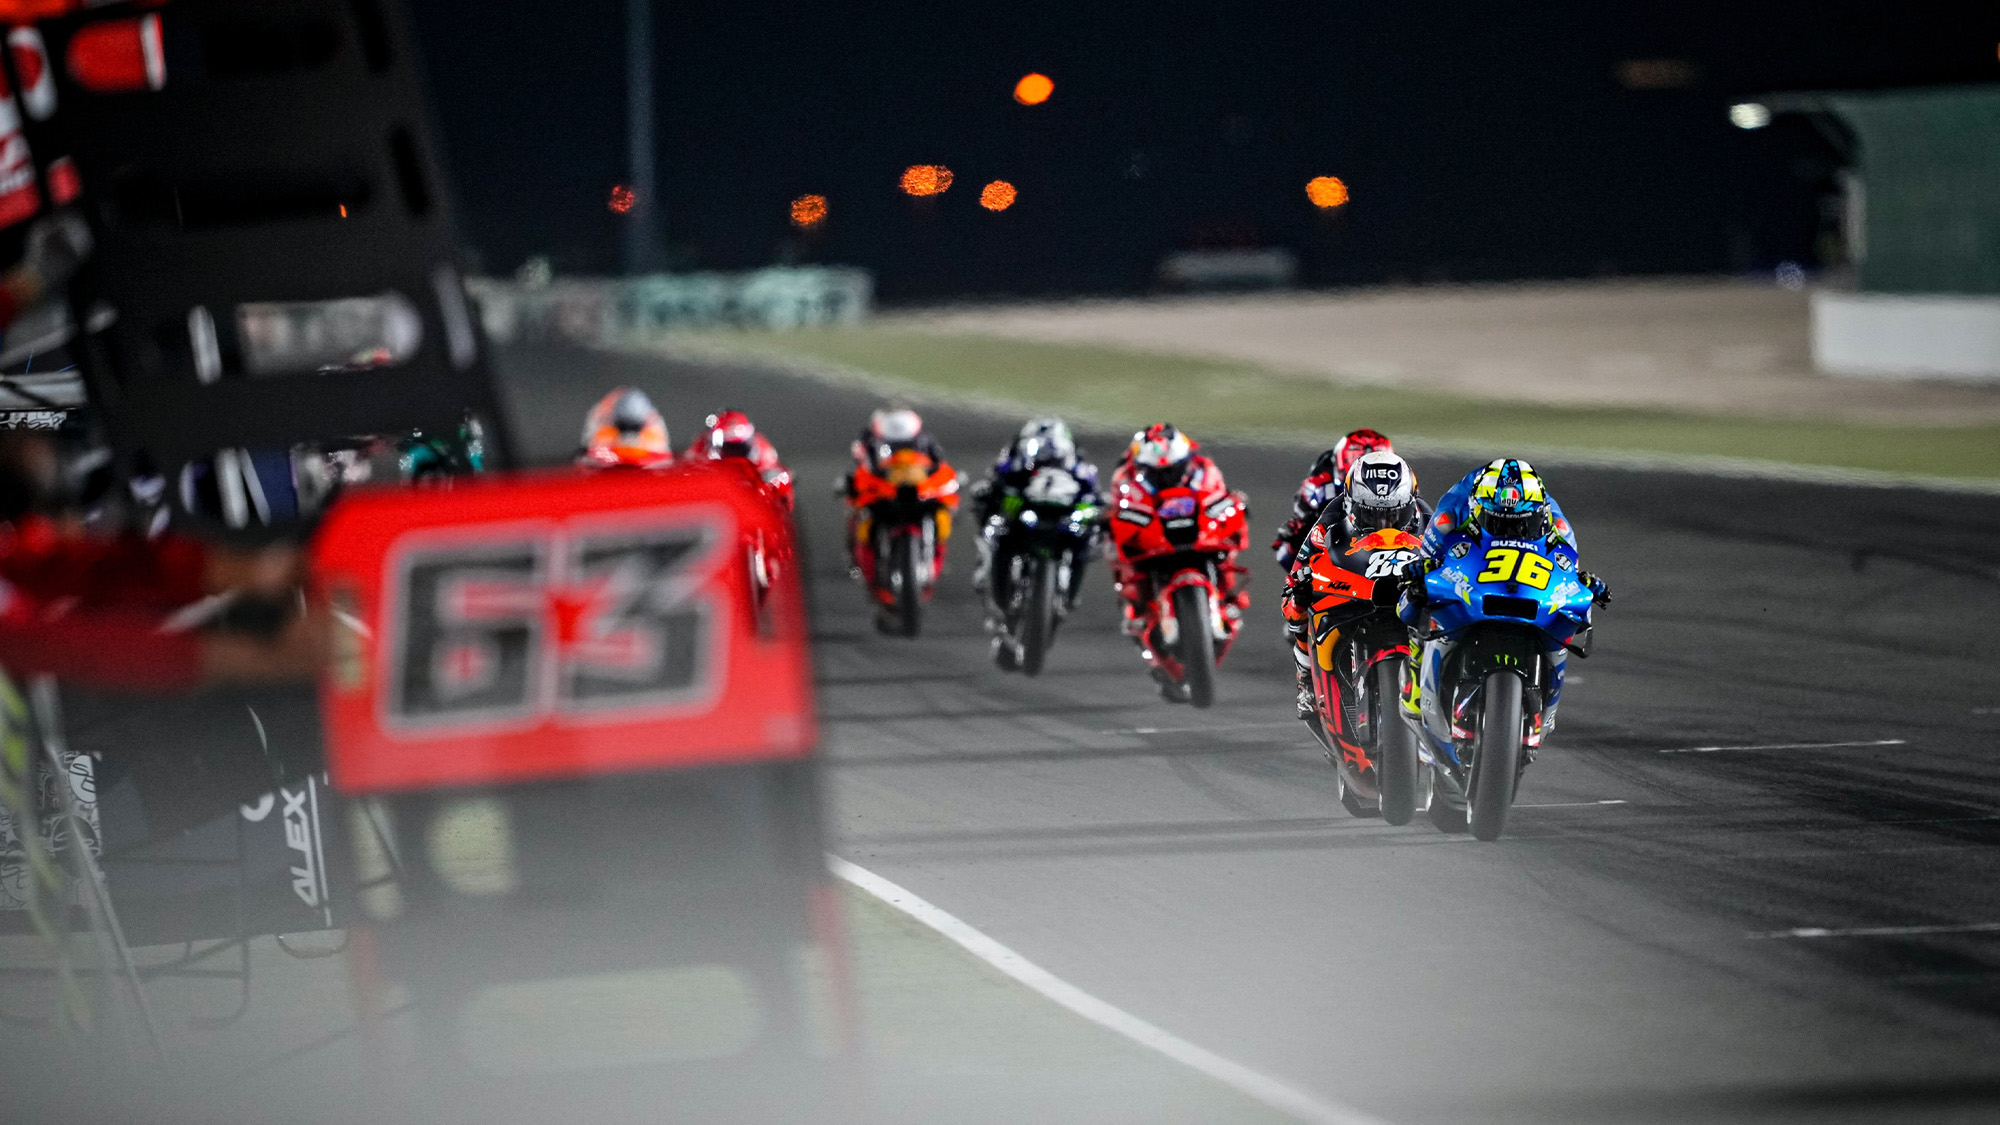 Slipstreaming in Doha during the 2021 MotoGP race